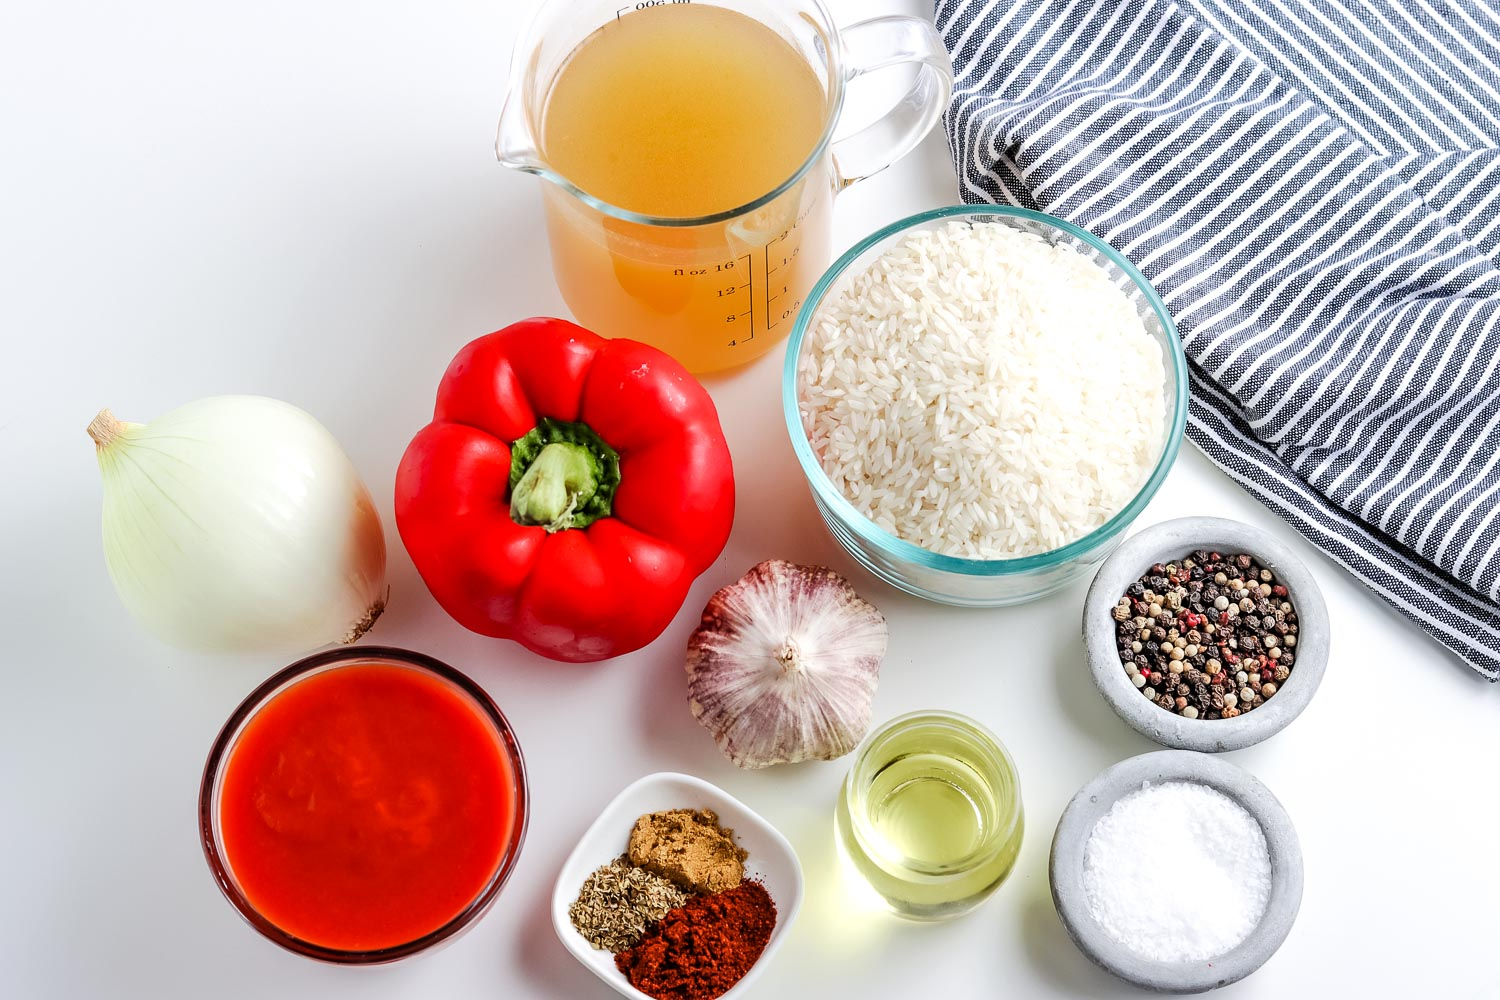 All of the ingredients needed to make this Spanish Rice recipe